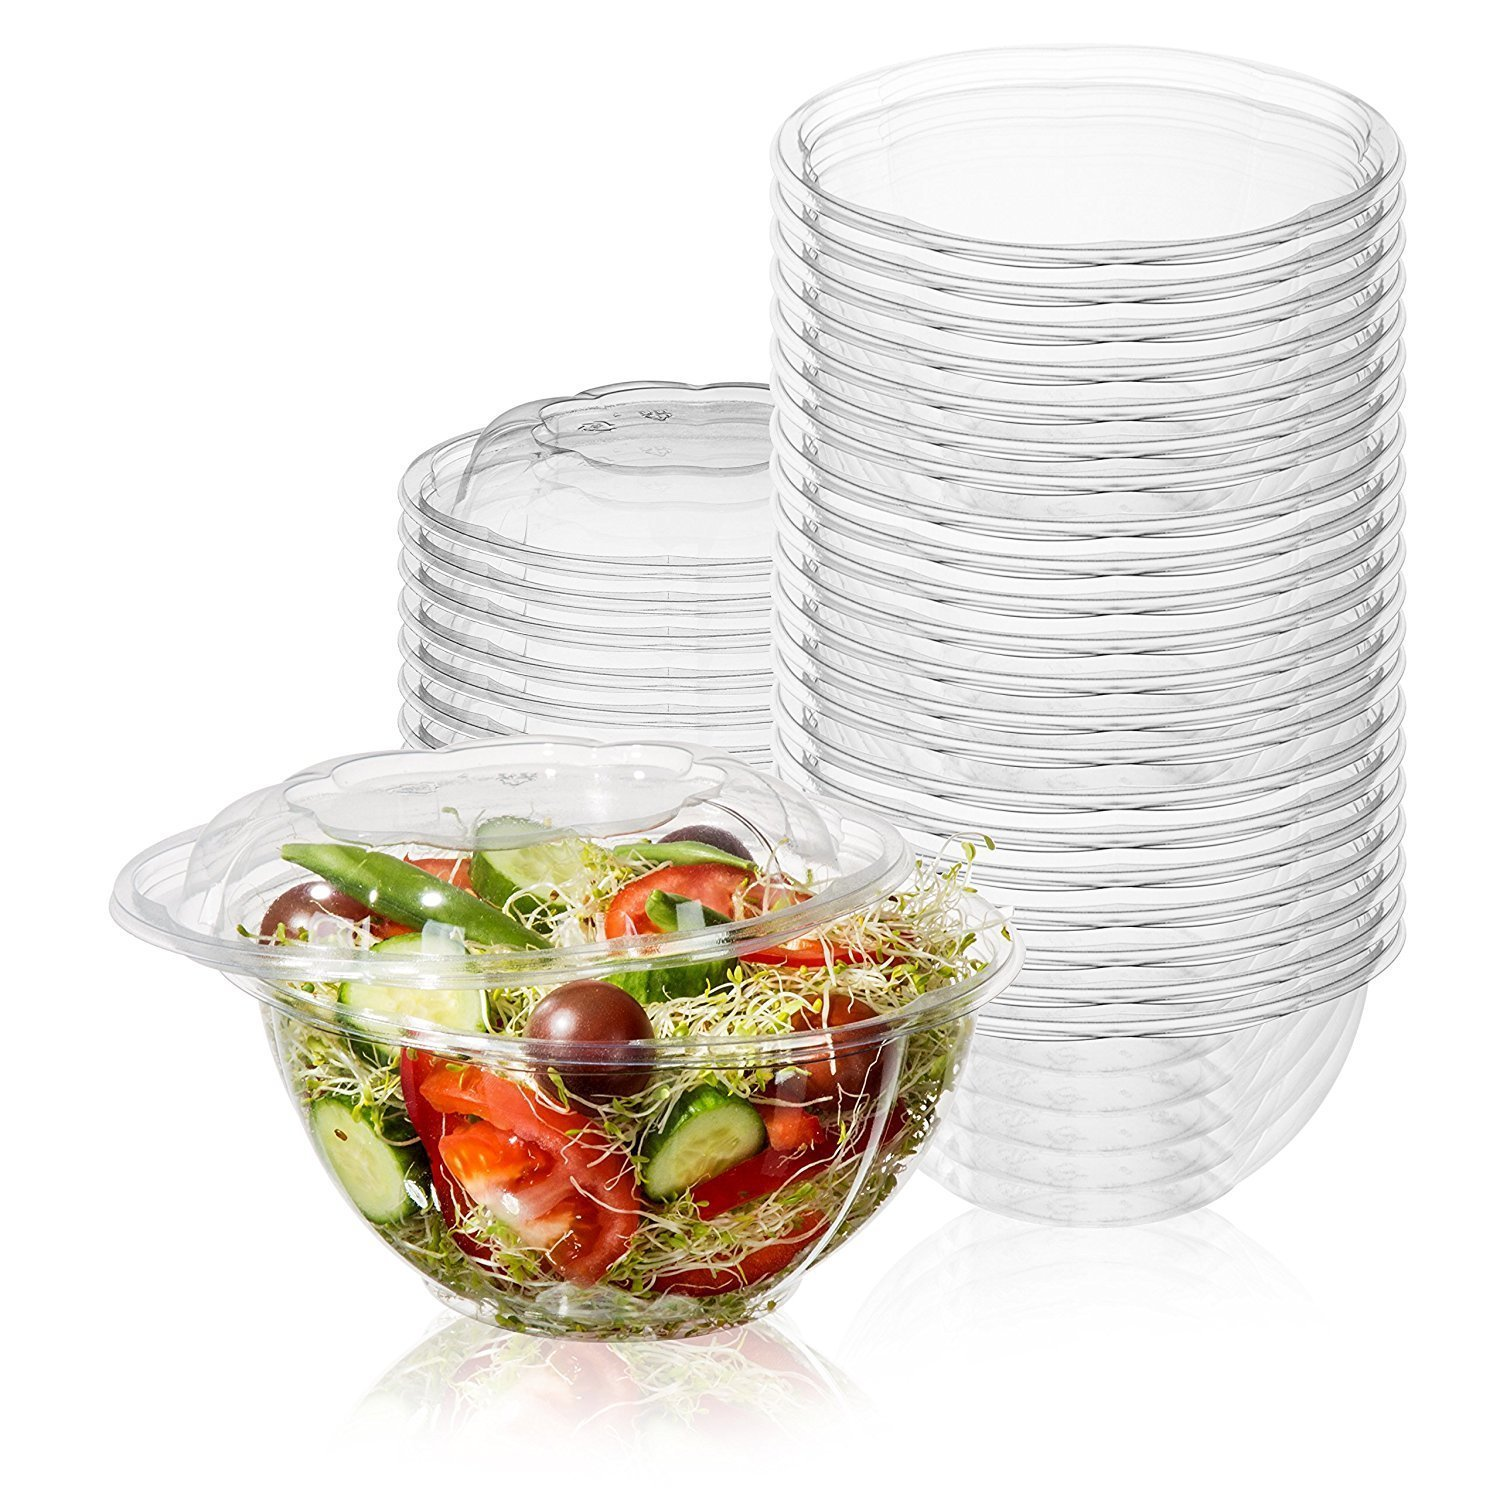 50-Pack 24oz Plastic Disposable Salad Bowls with Lids - Eco-Friendly Clear Food Containers - Extra-Thick Materials - Portable Serving Bowl Set to Pack Lunch - Super Strong Seal To Preserve Freshness